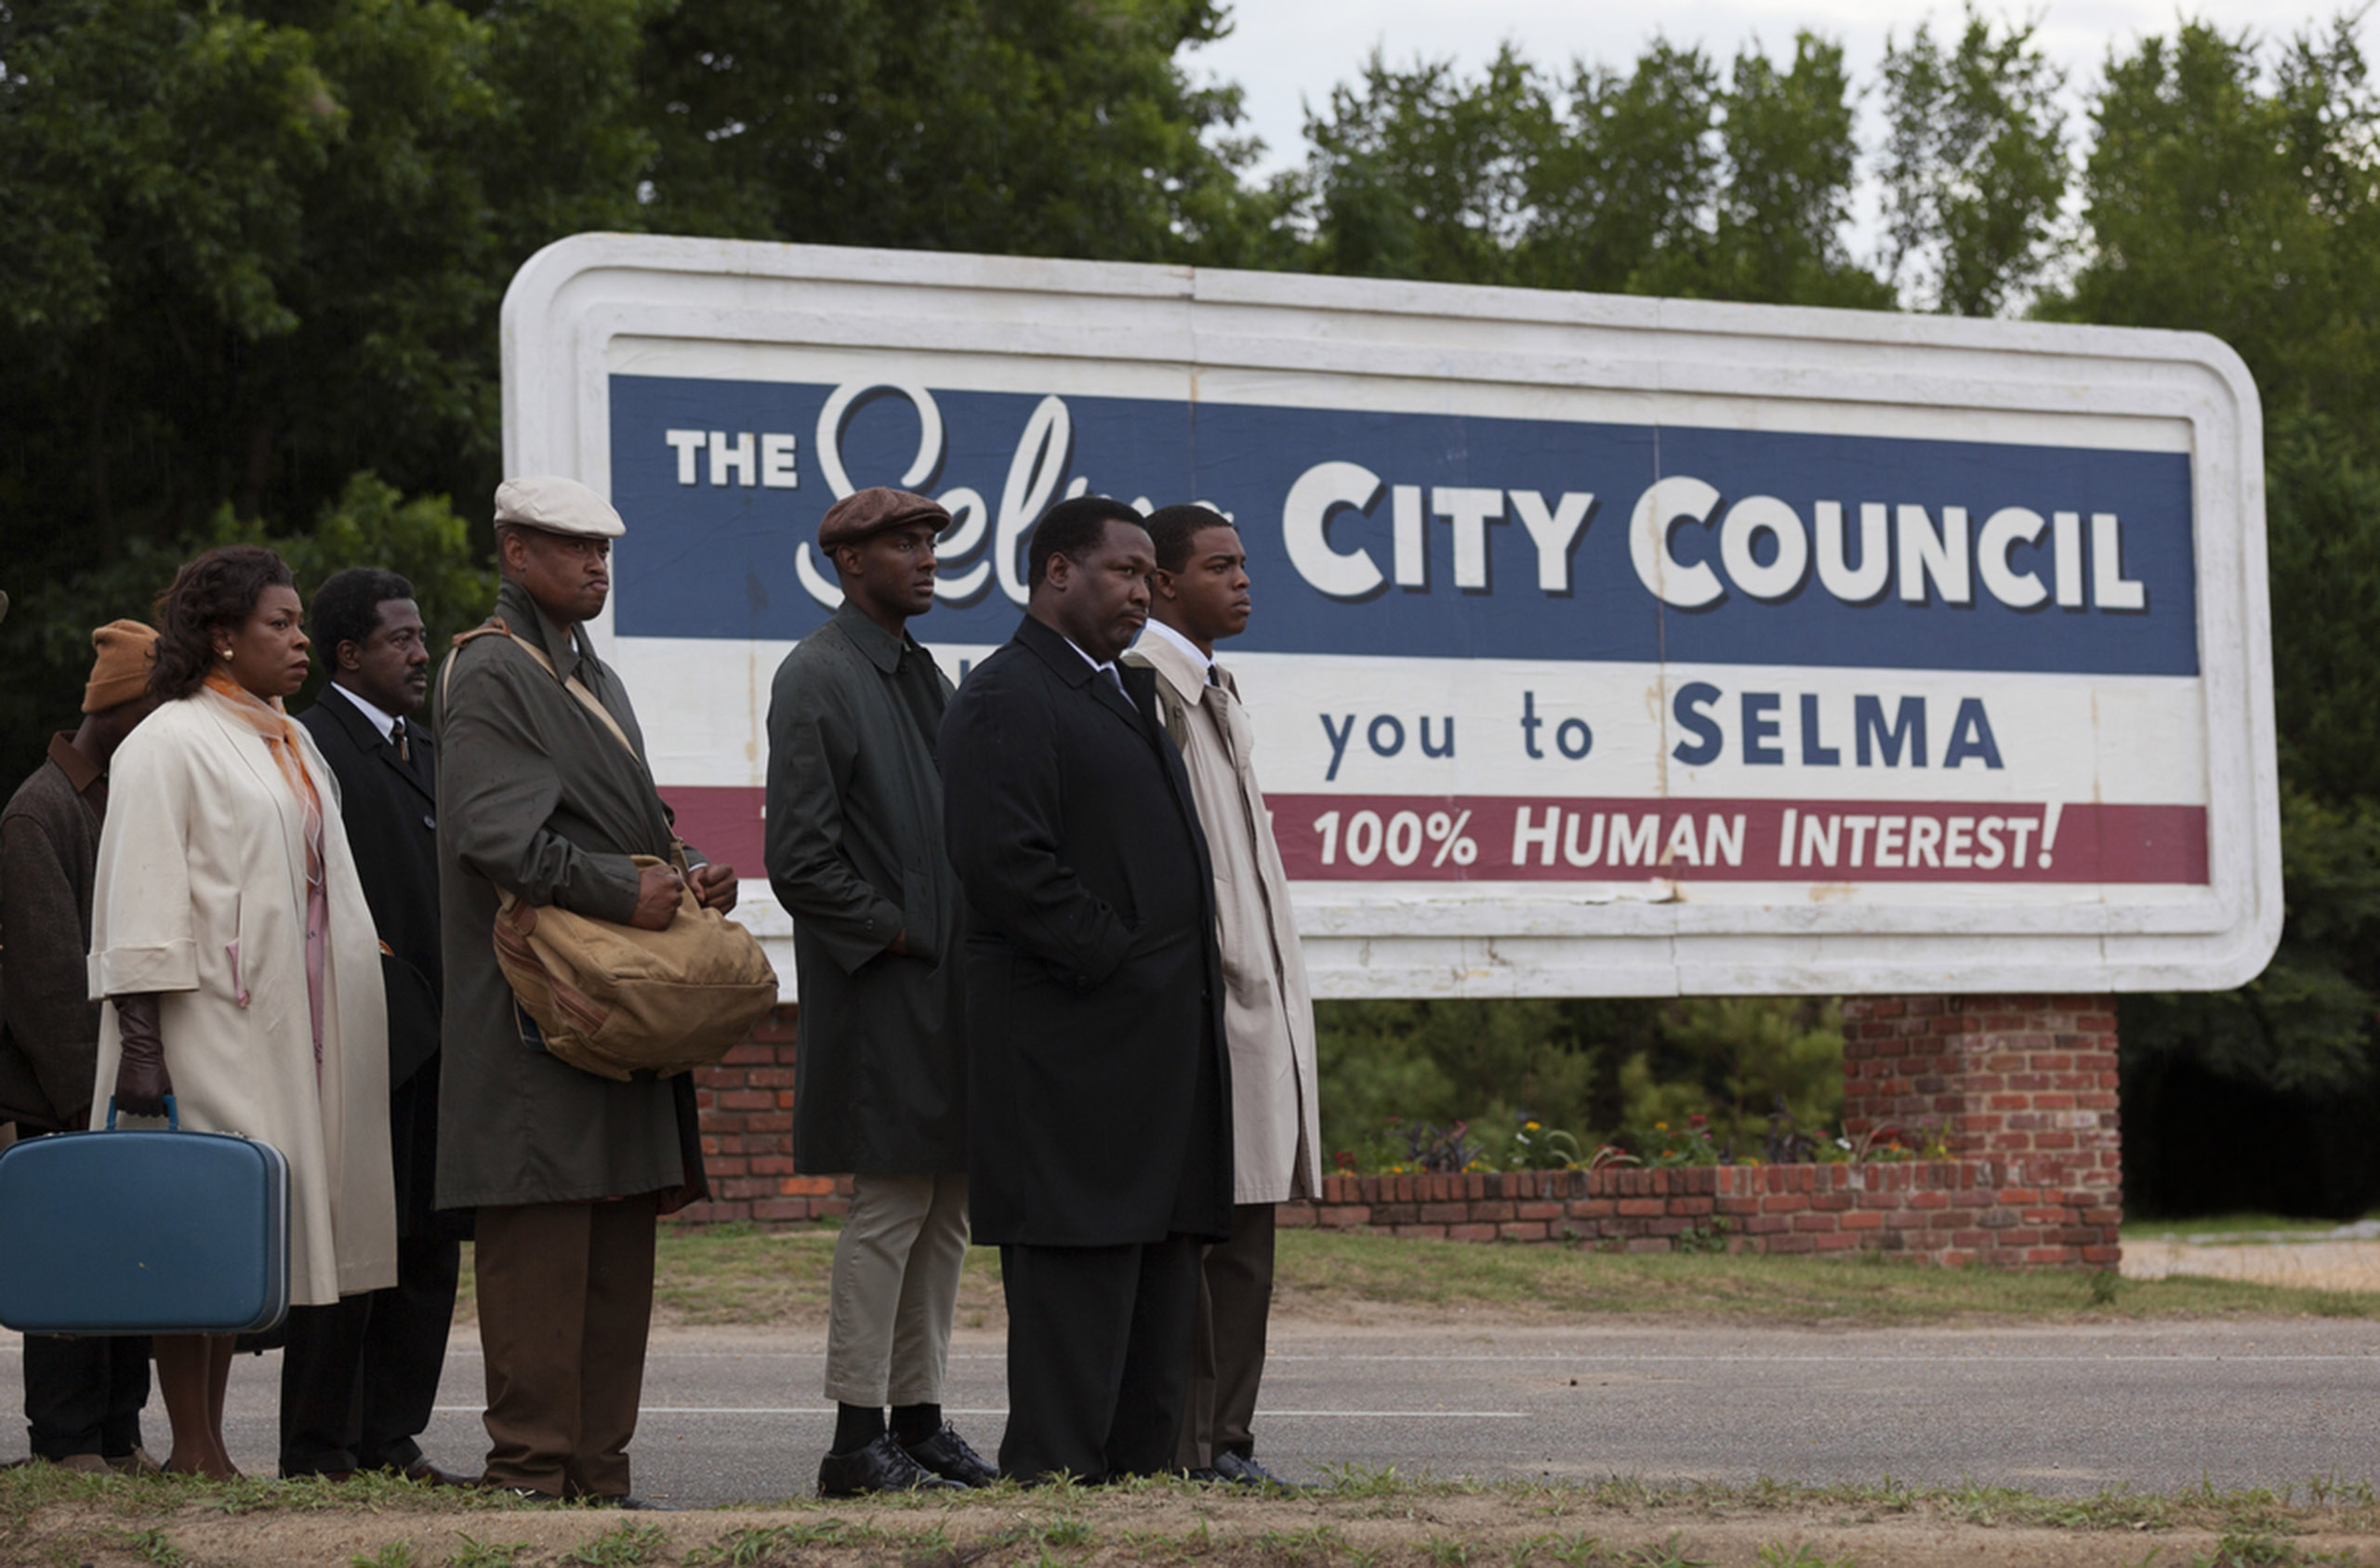 The following photographs were made by James Nachtwey on the set of the <i>Selma</I>.